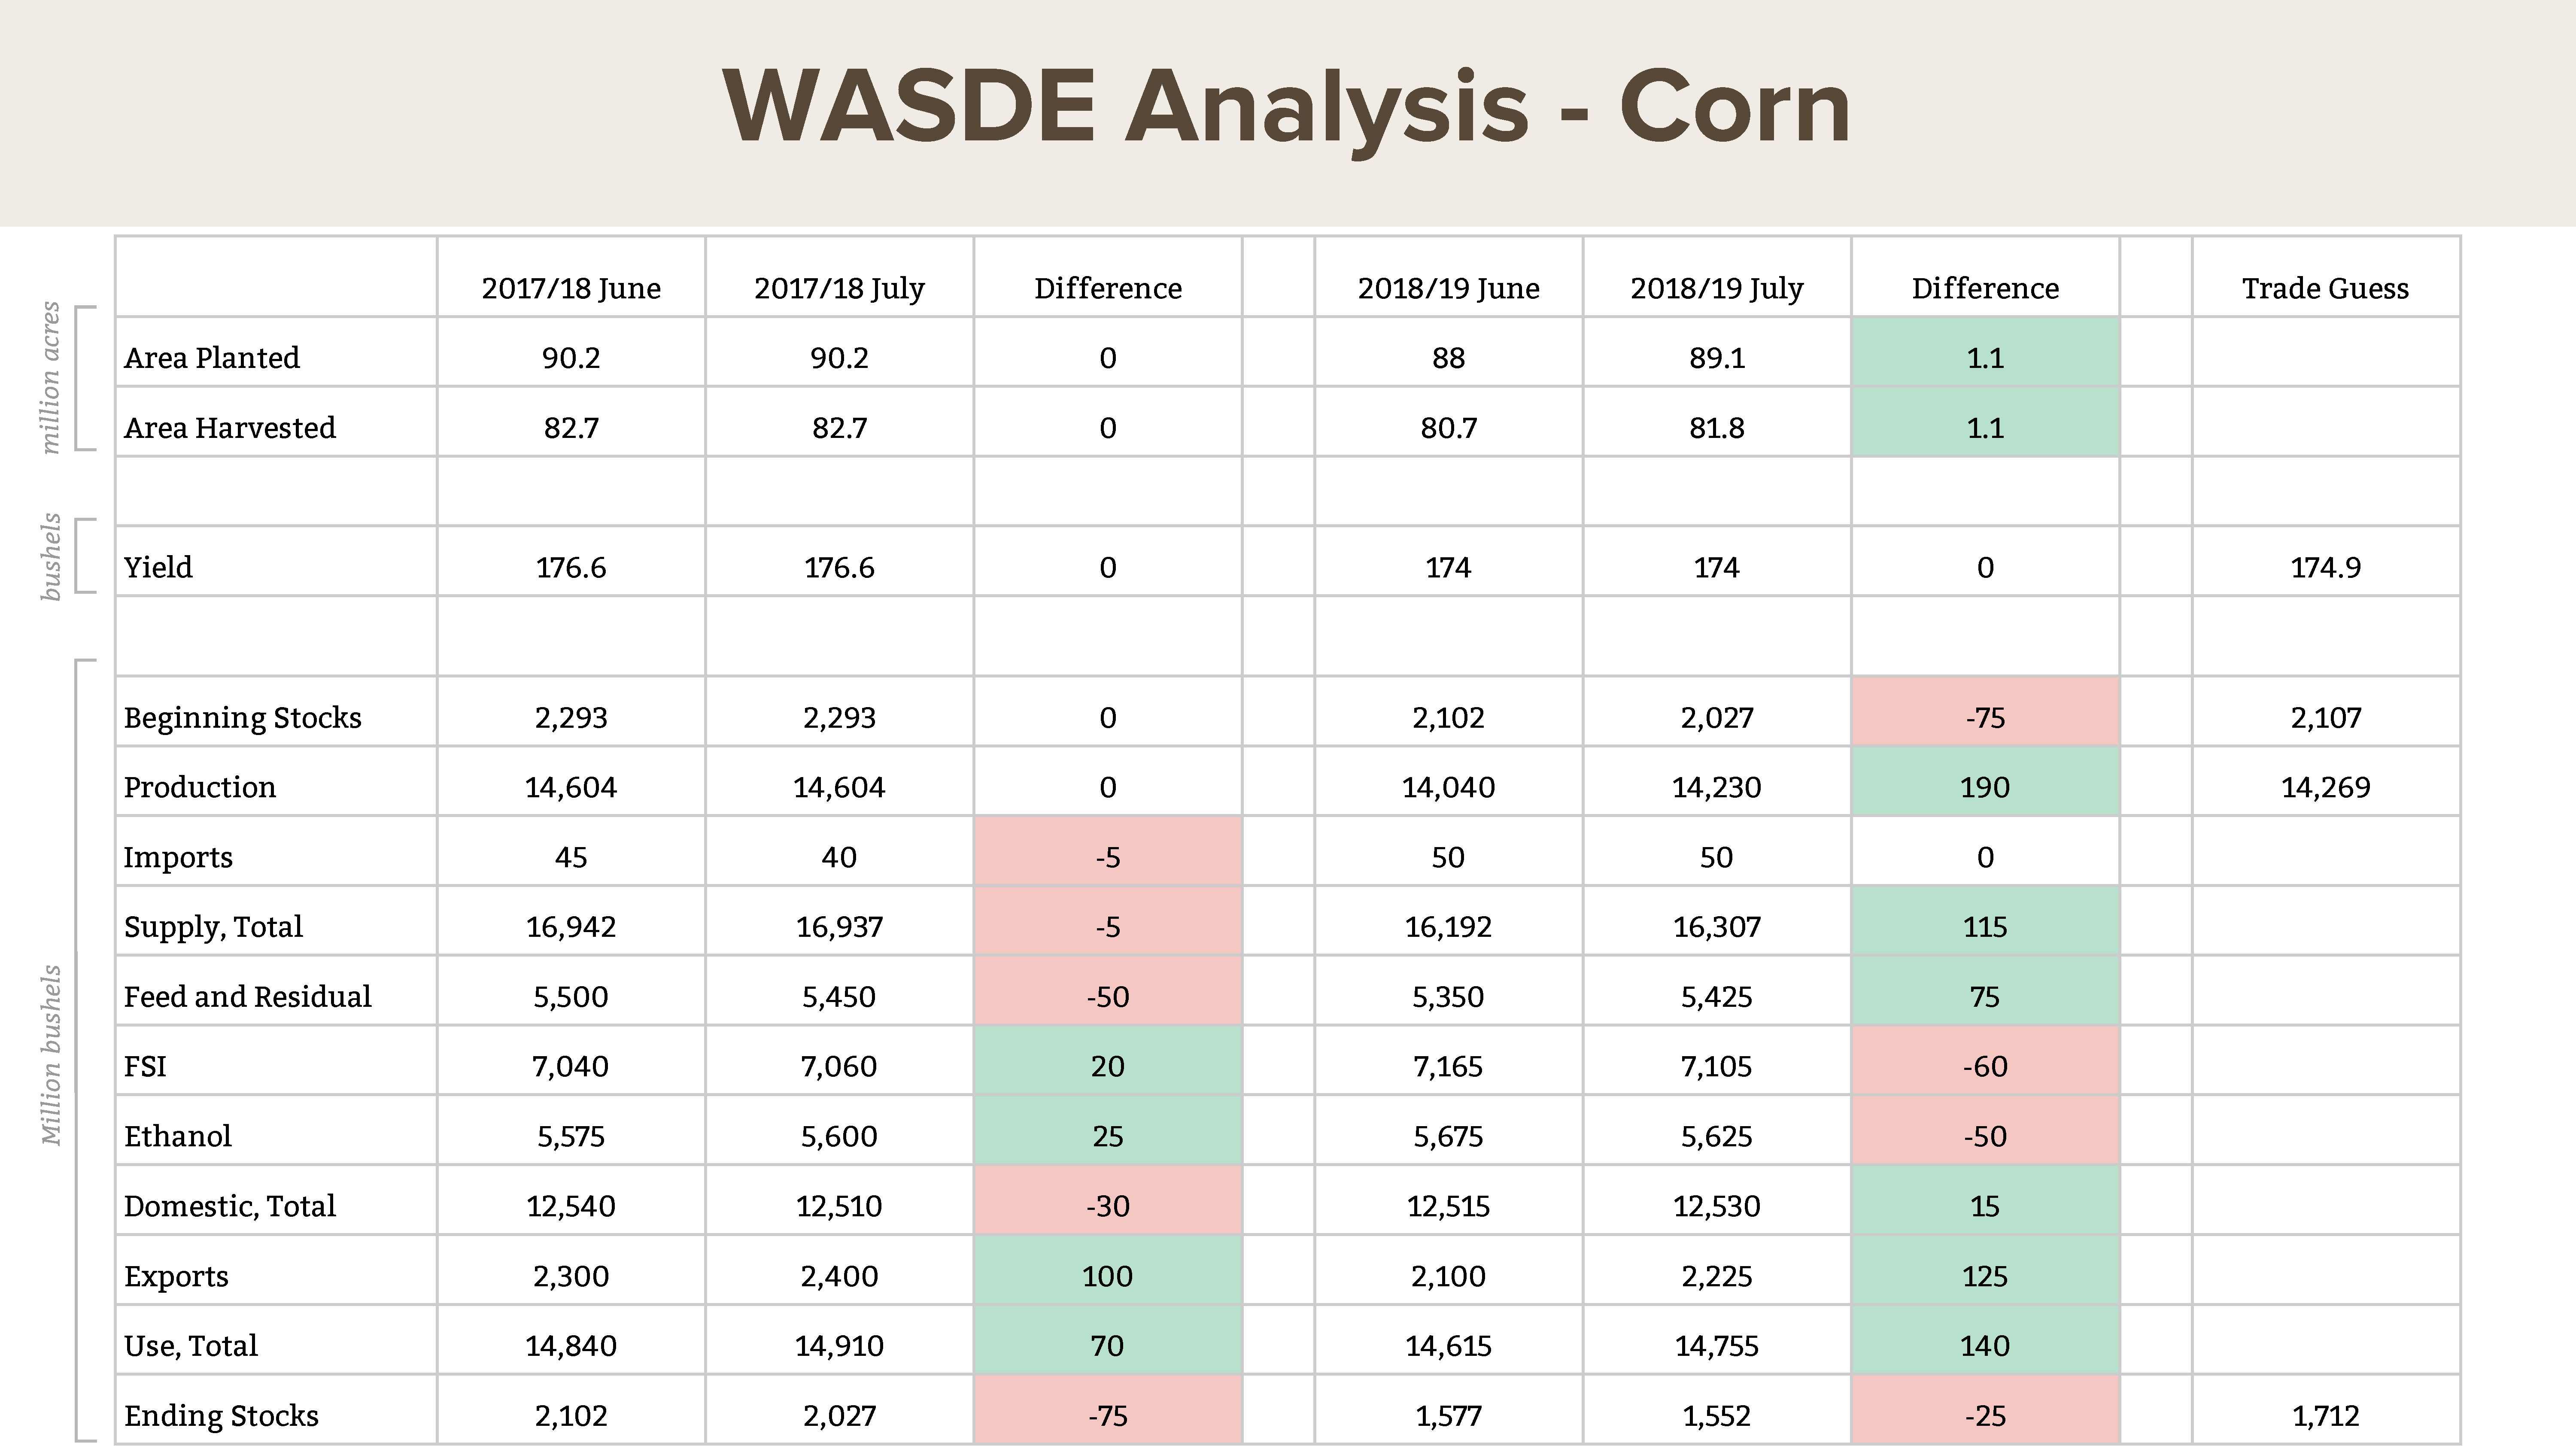 July WASDE: estimated U.S. corn acres planted, harvested, and yield